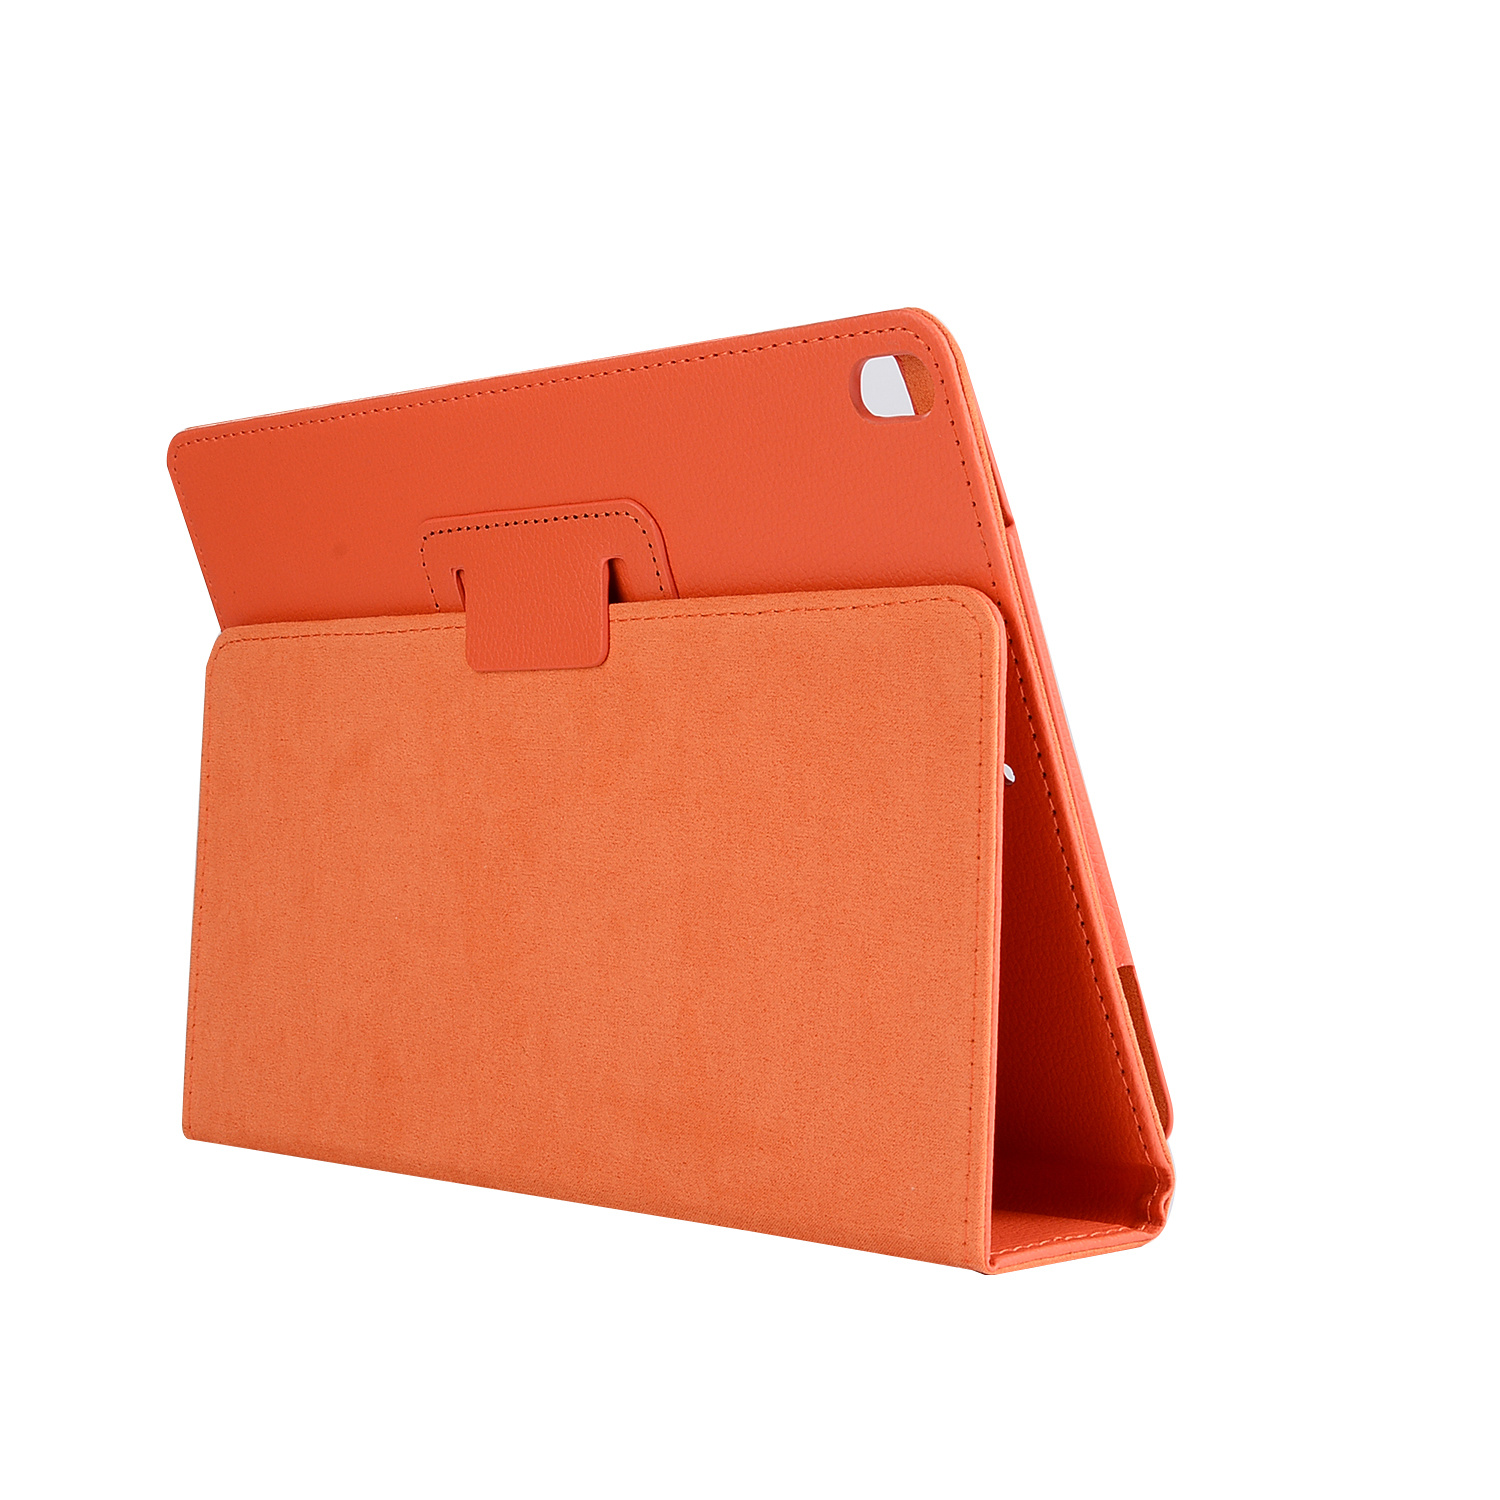 Stand flip sleepcover hoes - iPad Pro 10.5 inch / Air (2019) 10.5 inch - Oranje